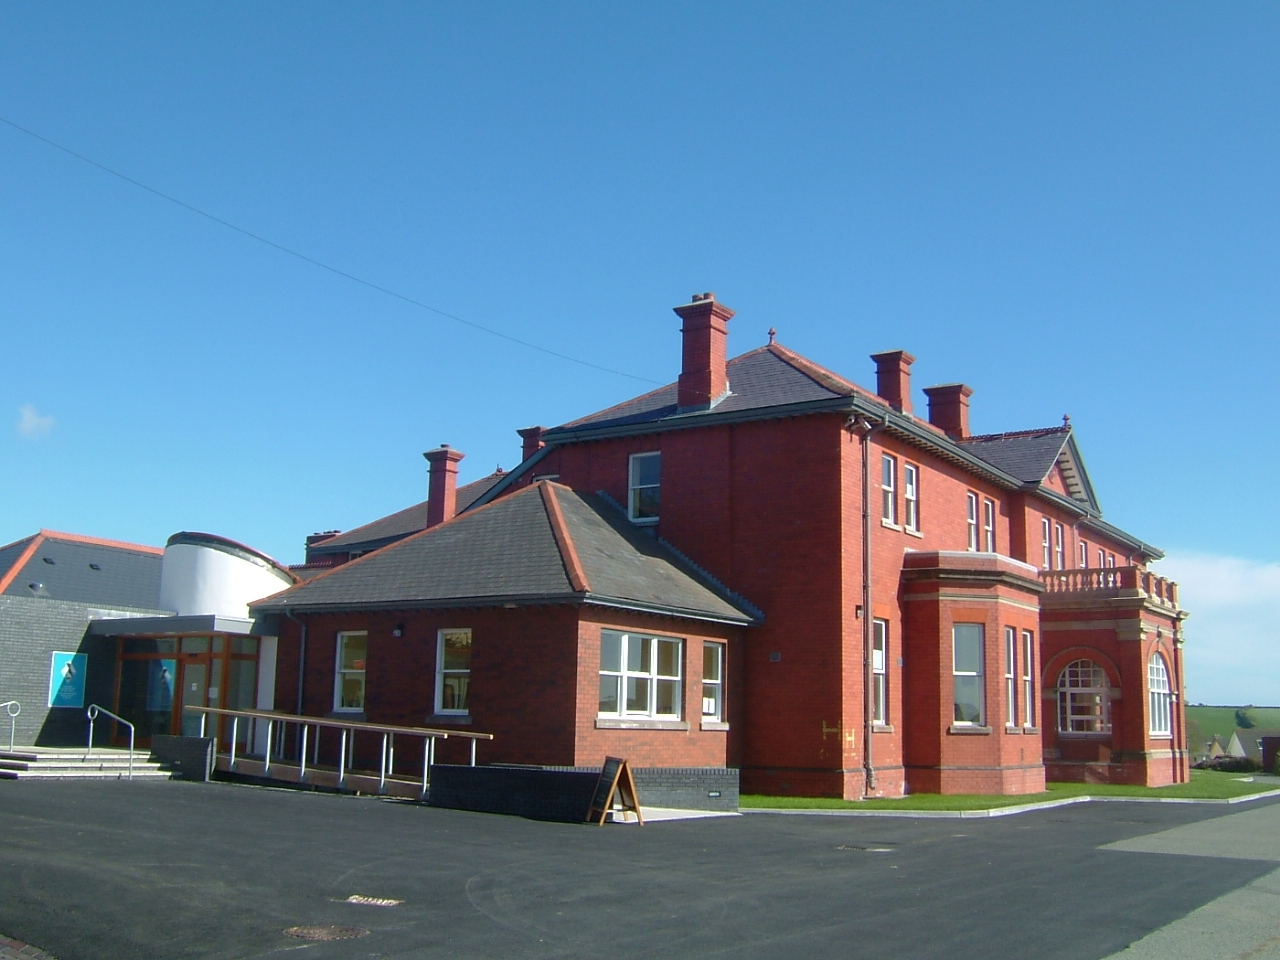 The Pembrokeshire Coast National Park Authority's Llanion Park headquarters.